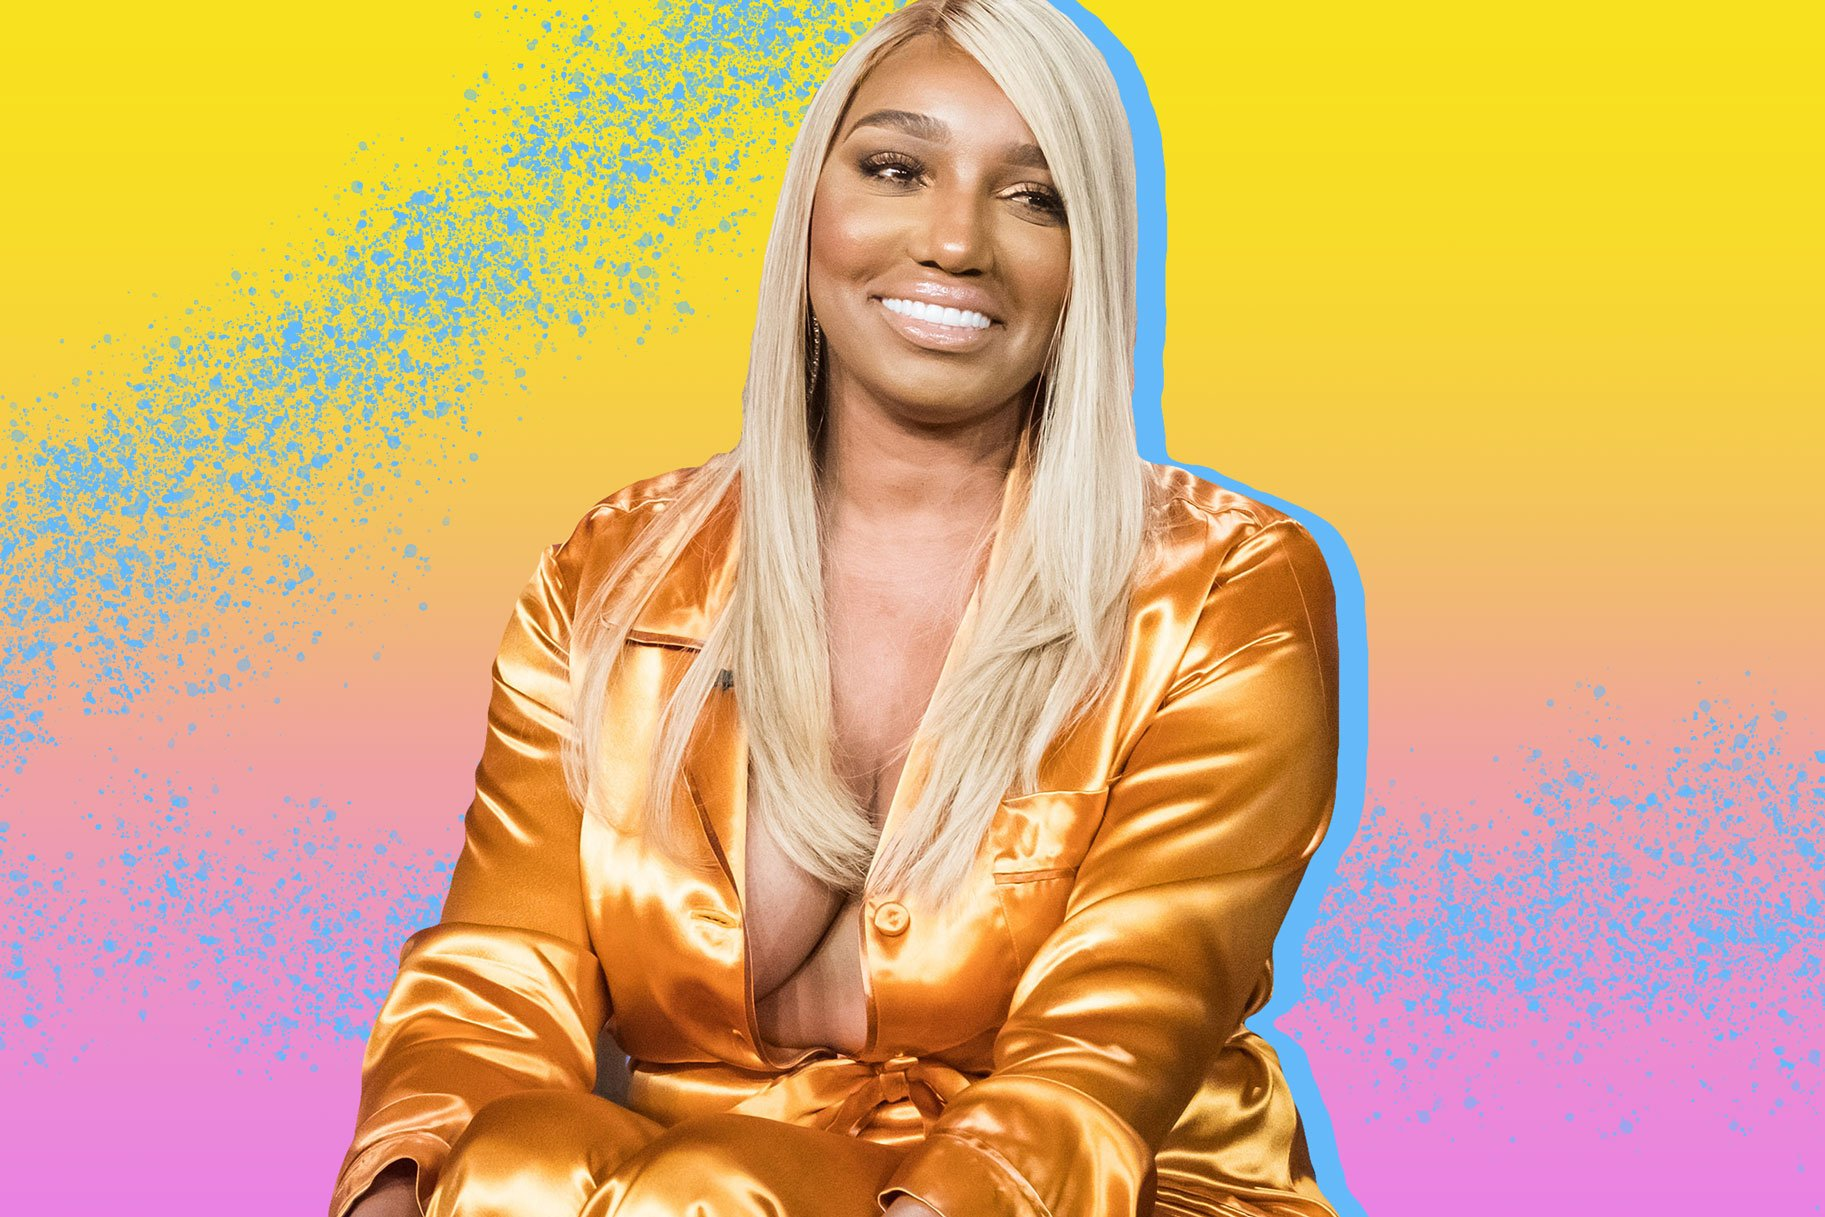 NeNe Leakes Breaks The Internet With Her Saggitarius Energy – She's Flaunting Her Goodies In Blue Lingerie For Her Birthday